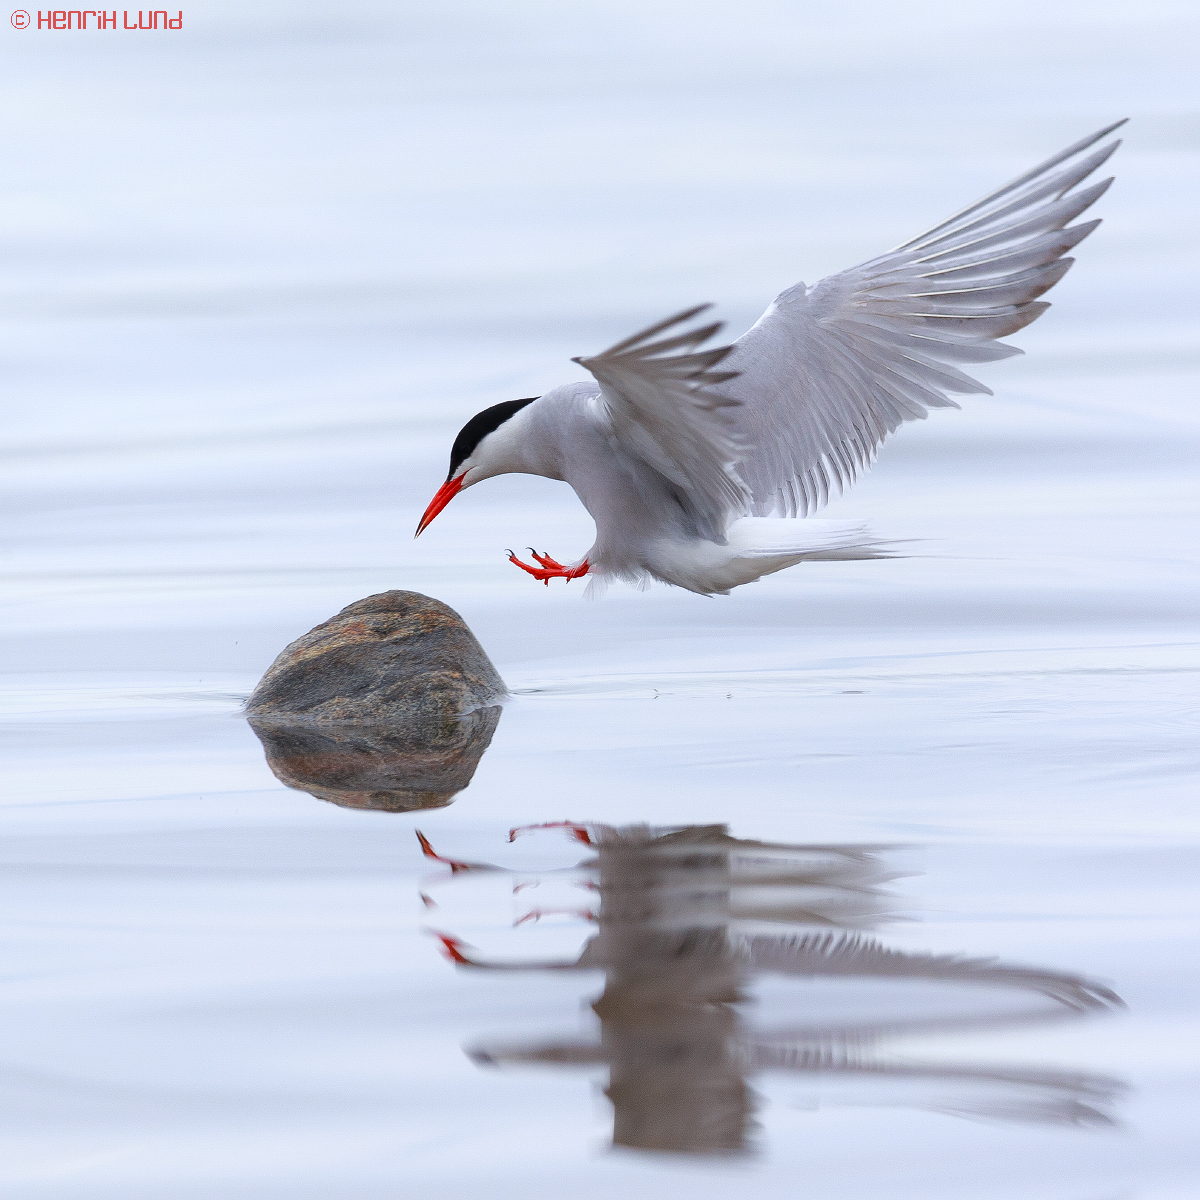 A common tern landing. Lappträsk, Finland, June 2014.